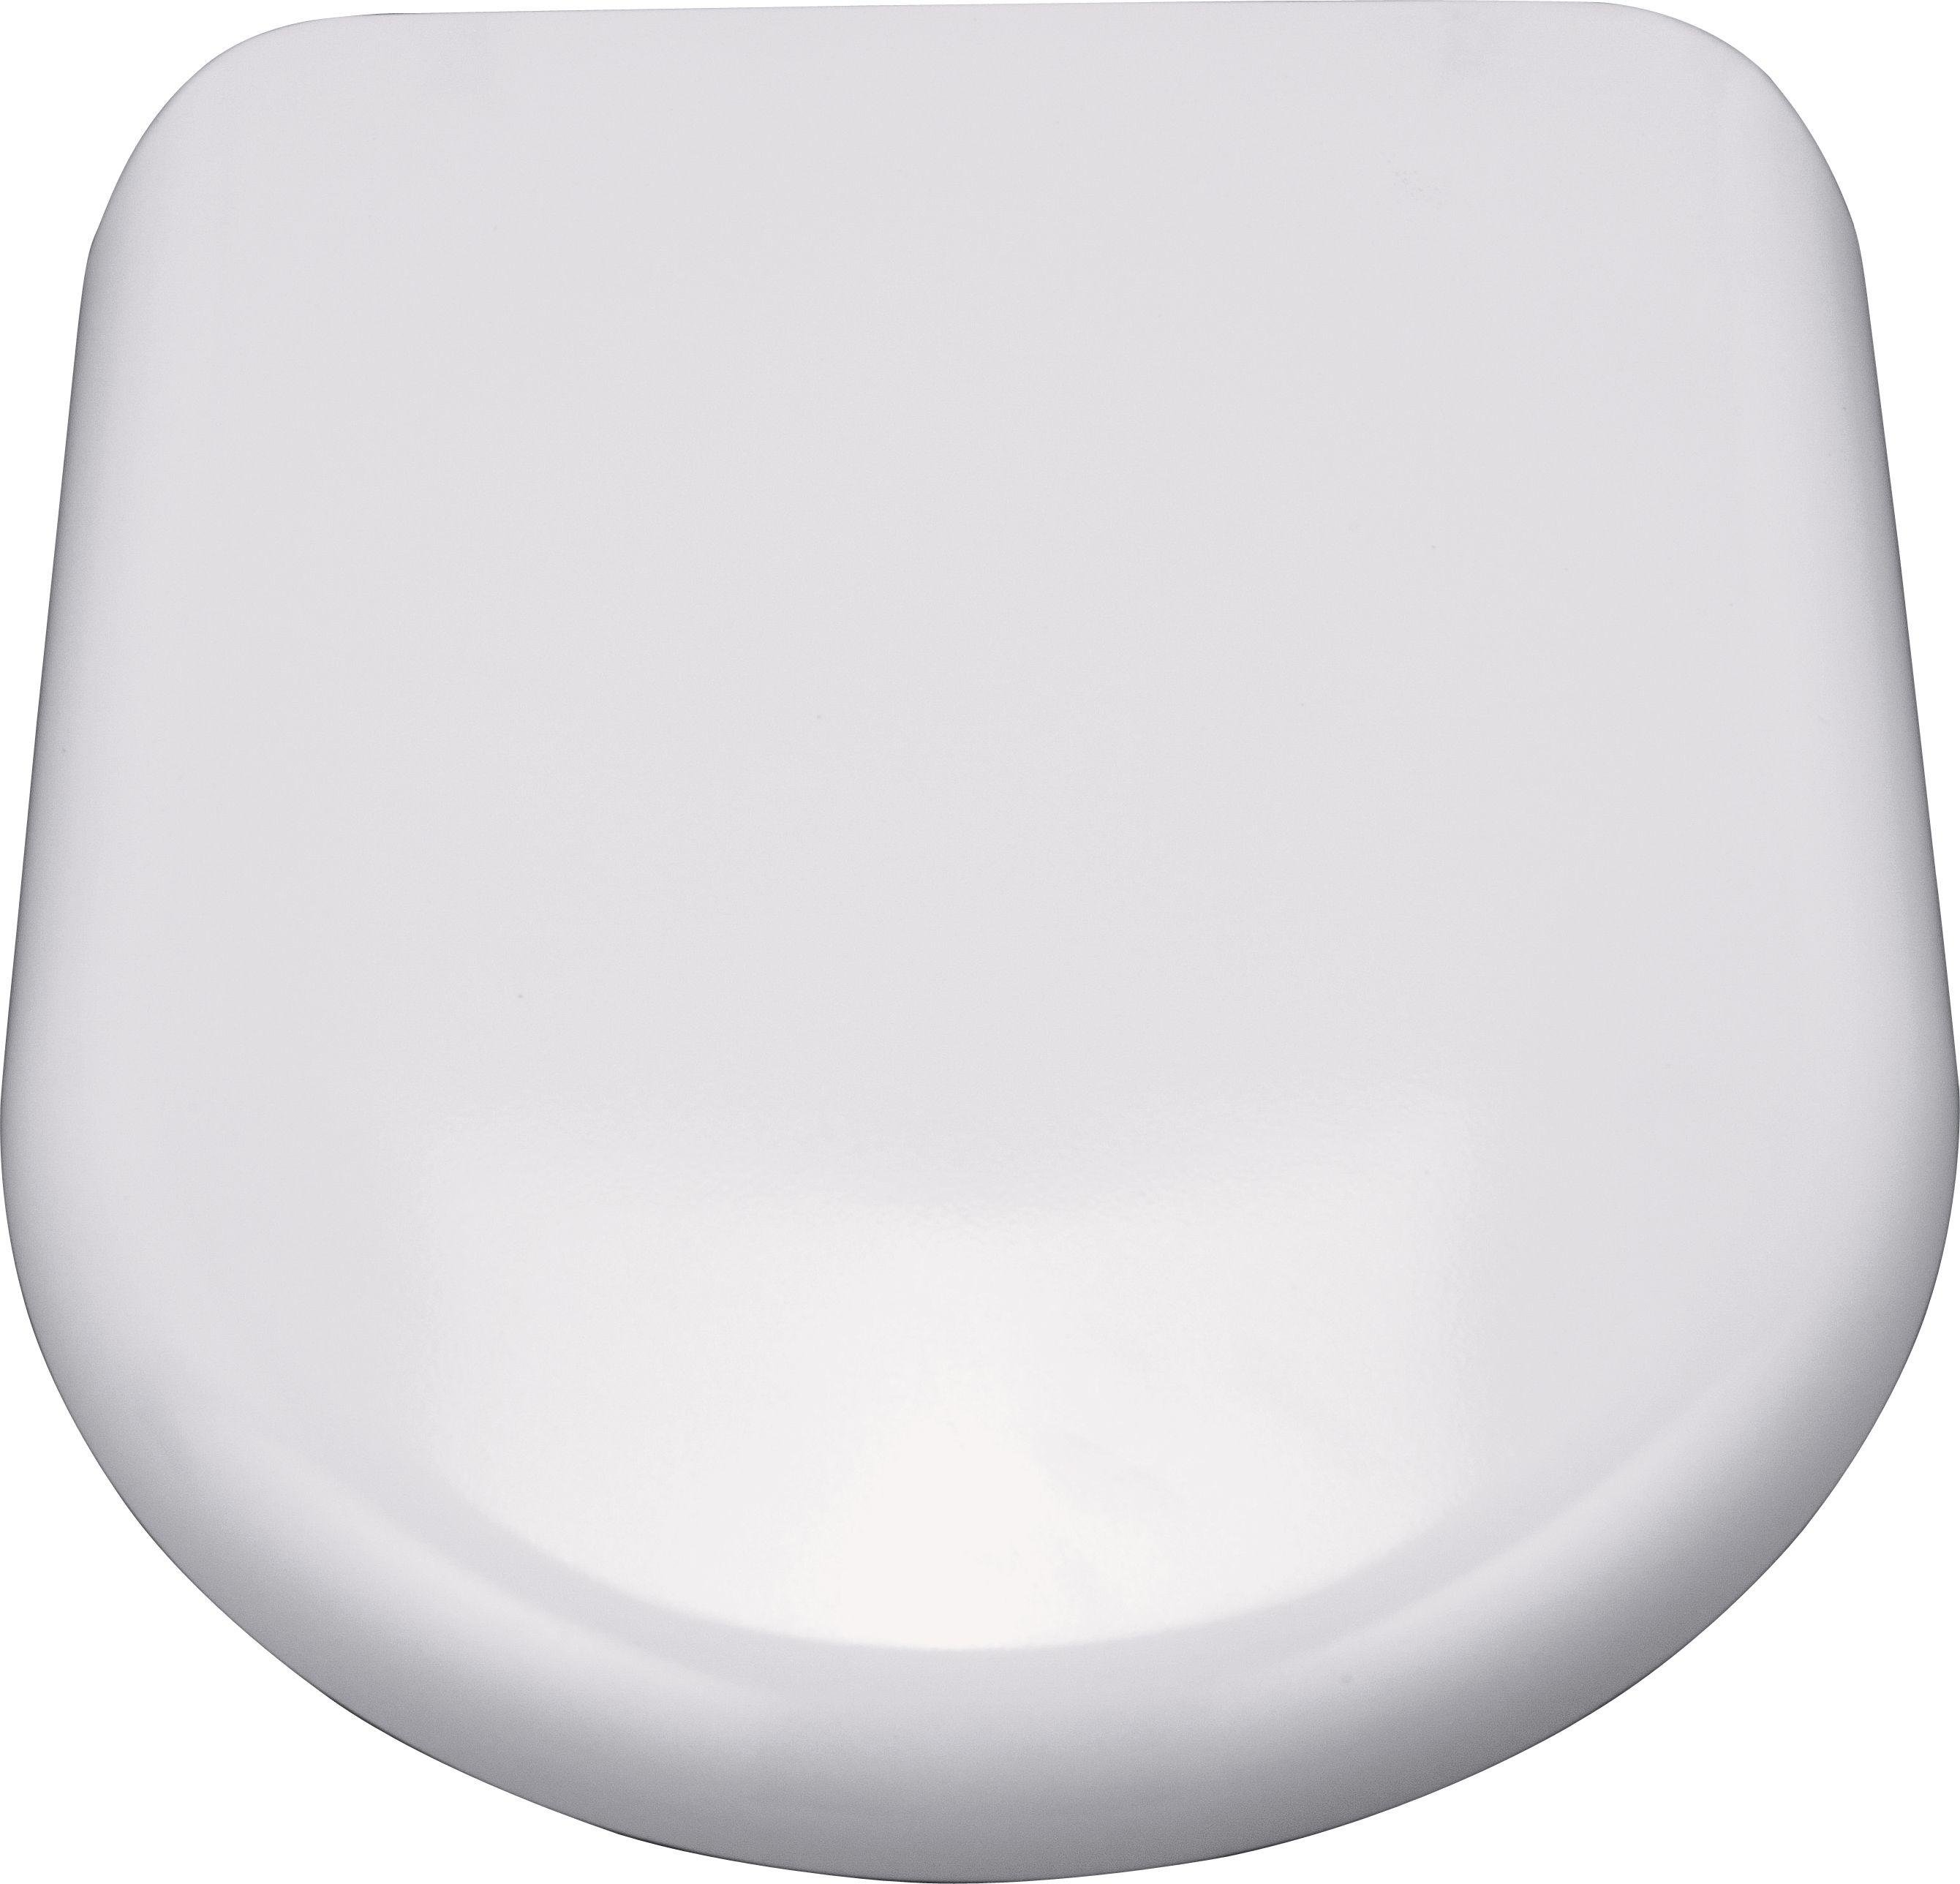 Buy HOME Square Back Thermoplastic Slow Close Toilet Seat White